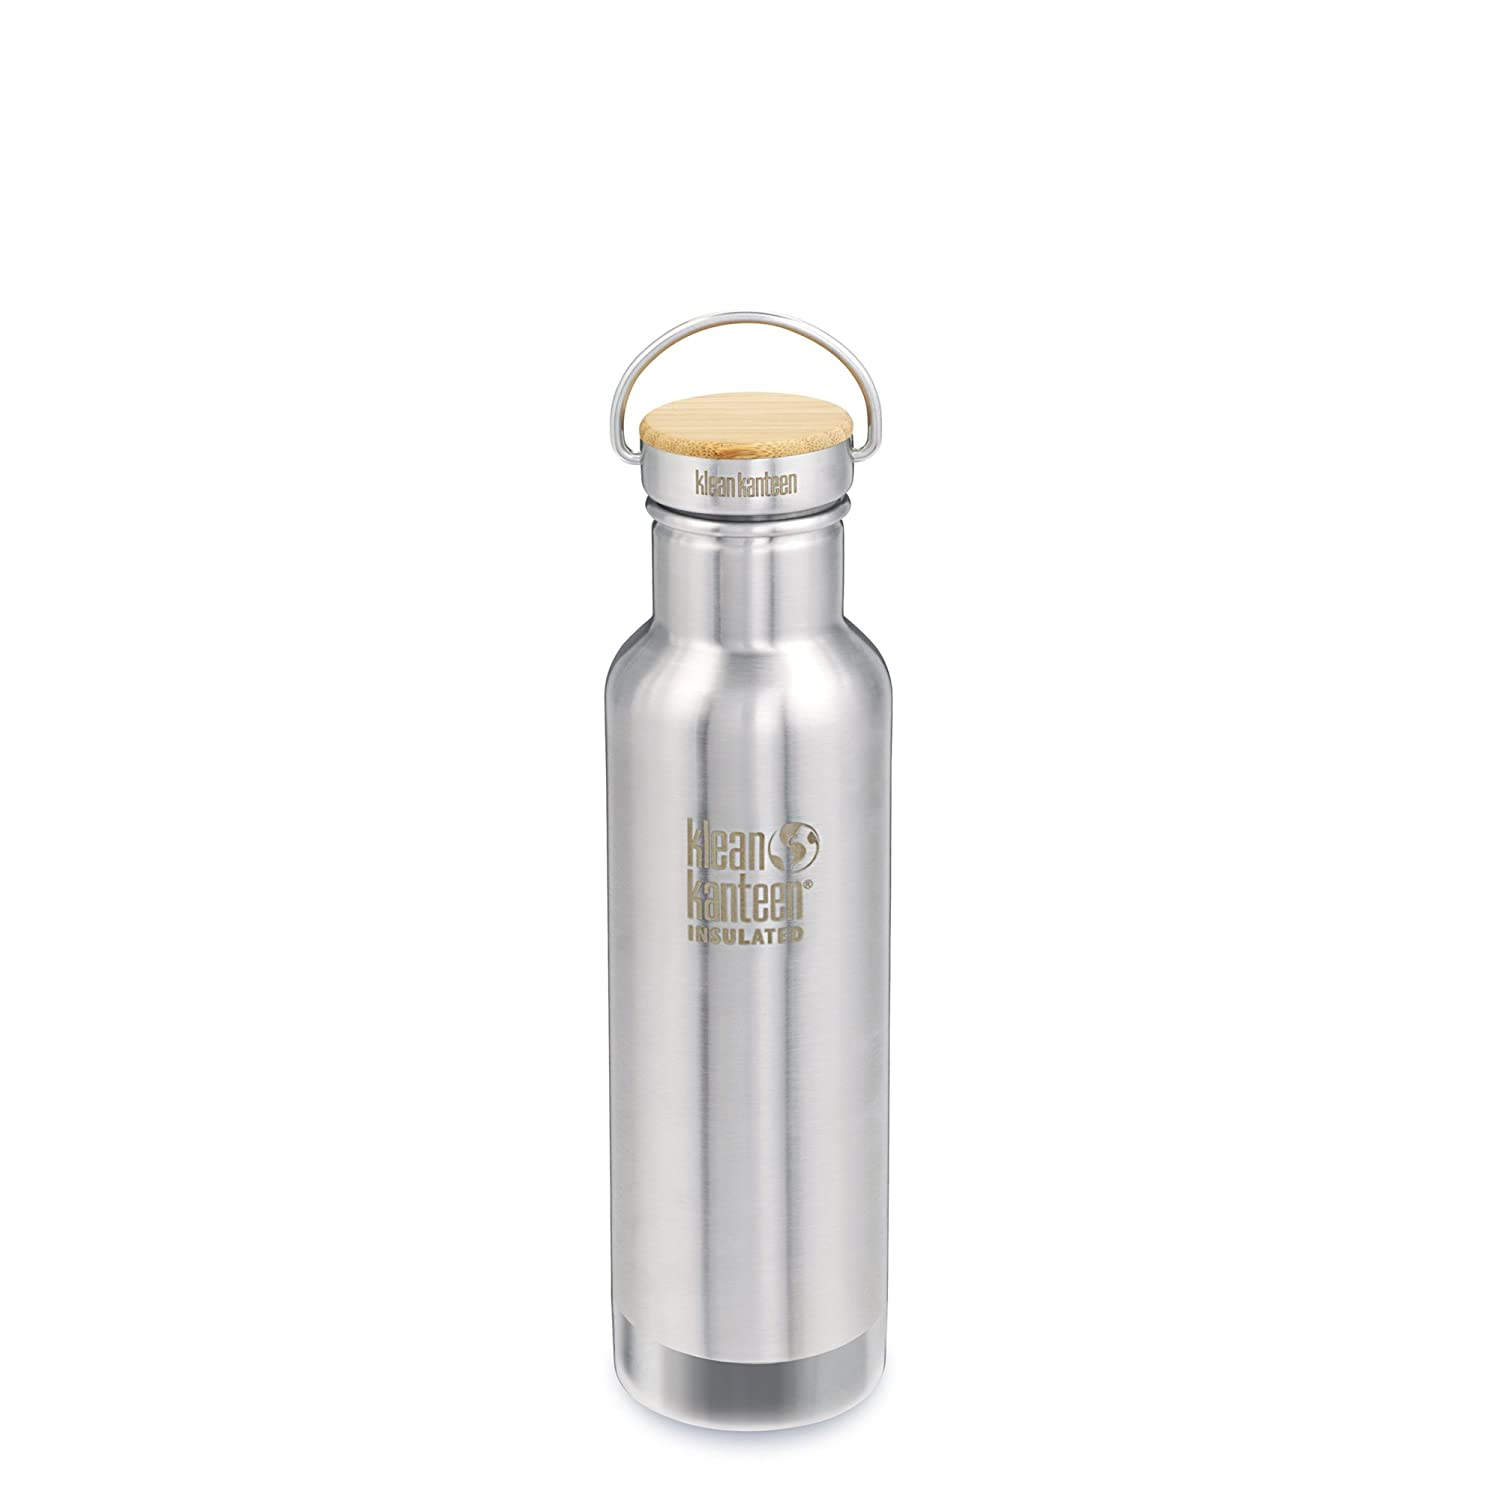 Klean Kanteen Reflect Stainless Steel Plastic Free Water Bottle, Double Wall Vacuum Insulated with Stainless Steel/Bamboo Cap